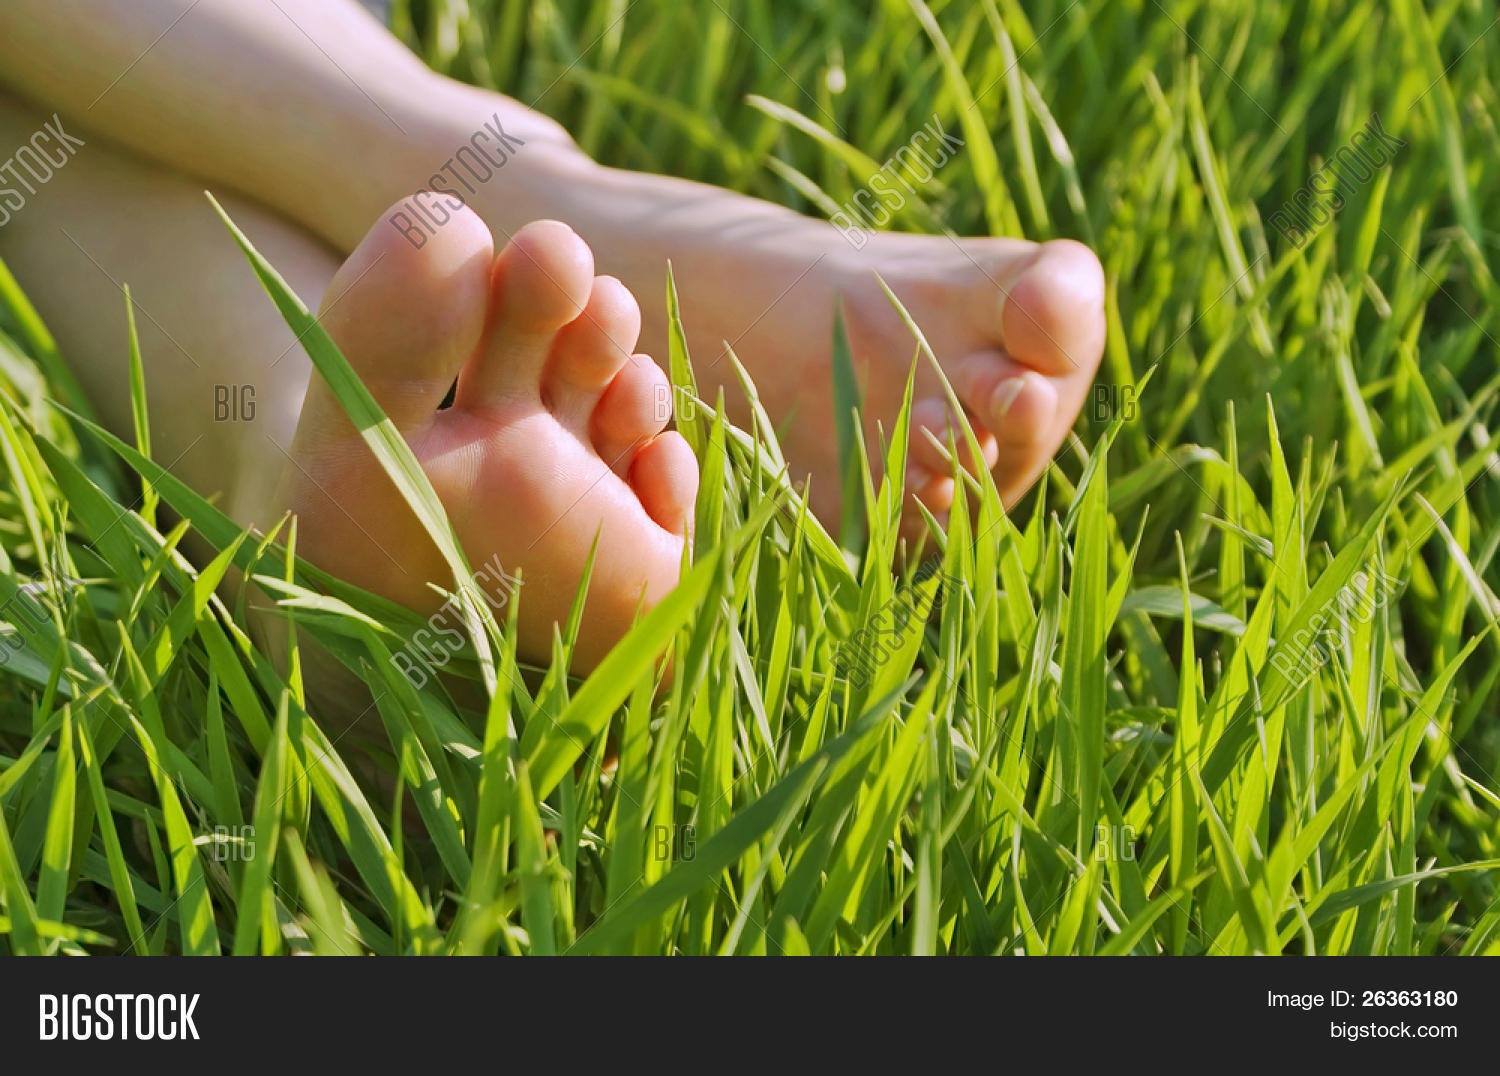 back,bare,bare feet,camping,comfort,comfortable,foot,free,freedom,grass,green,nature,outdoors,recreation,relaxation,relaxing,rest,sleep,summer,sunny,toes